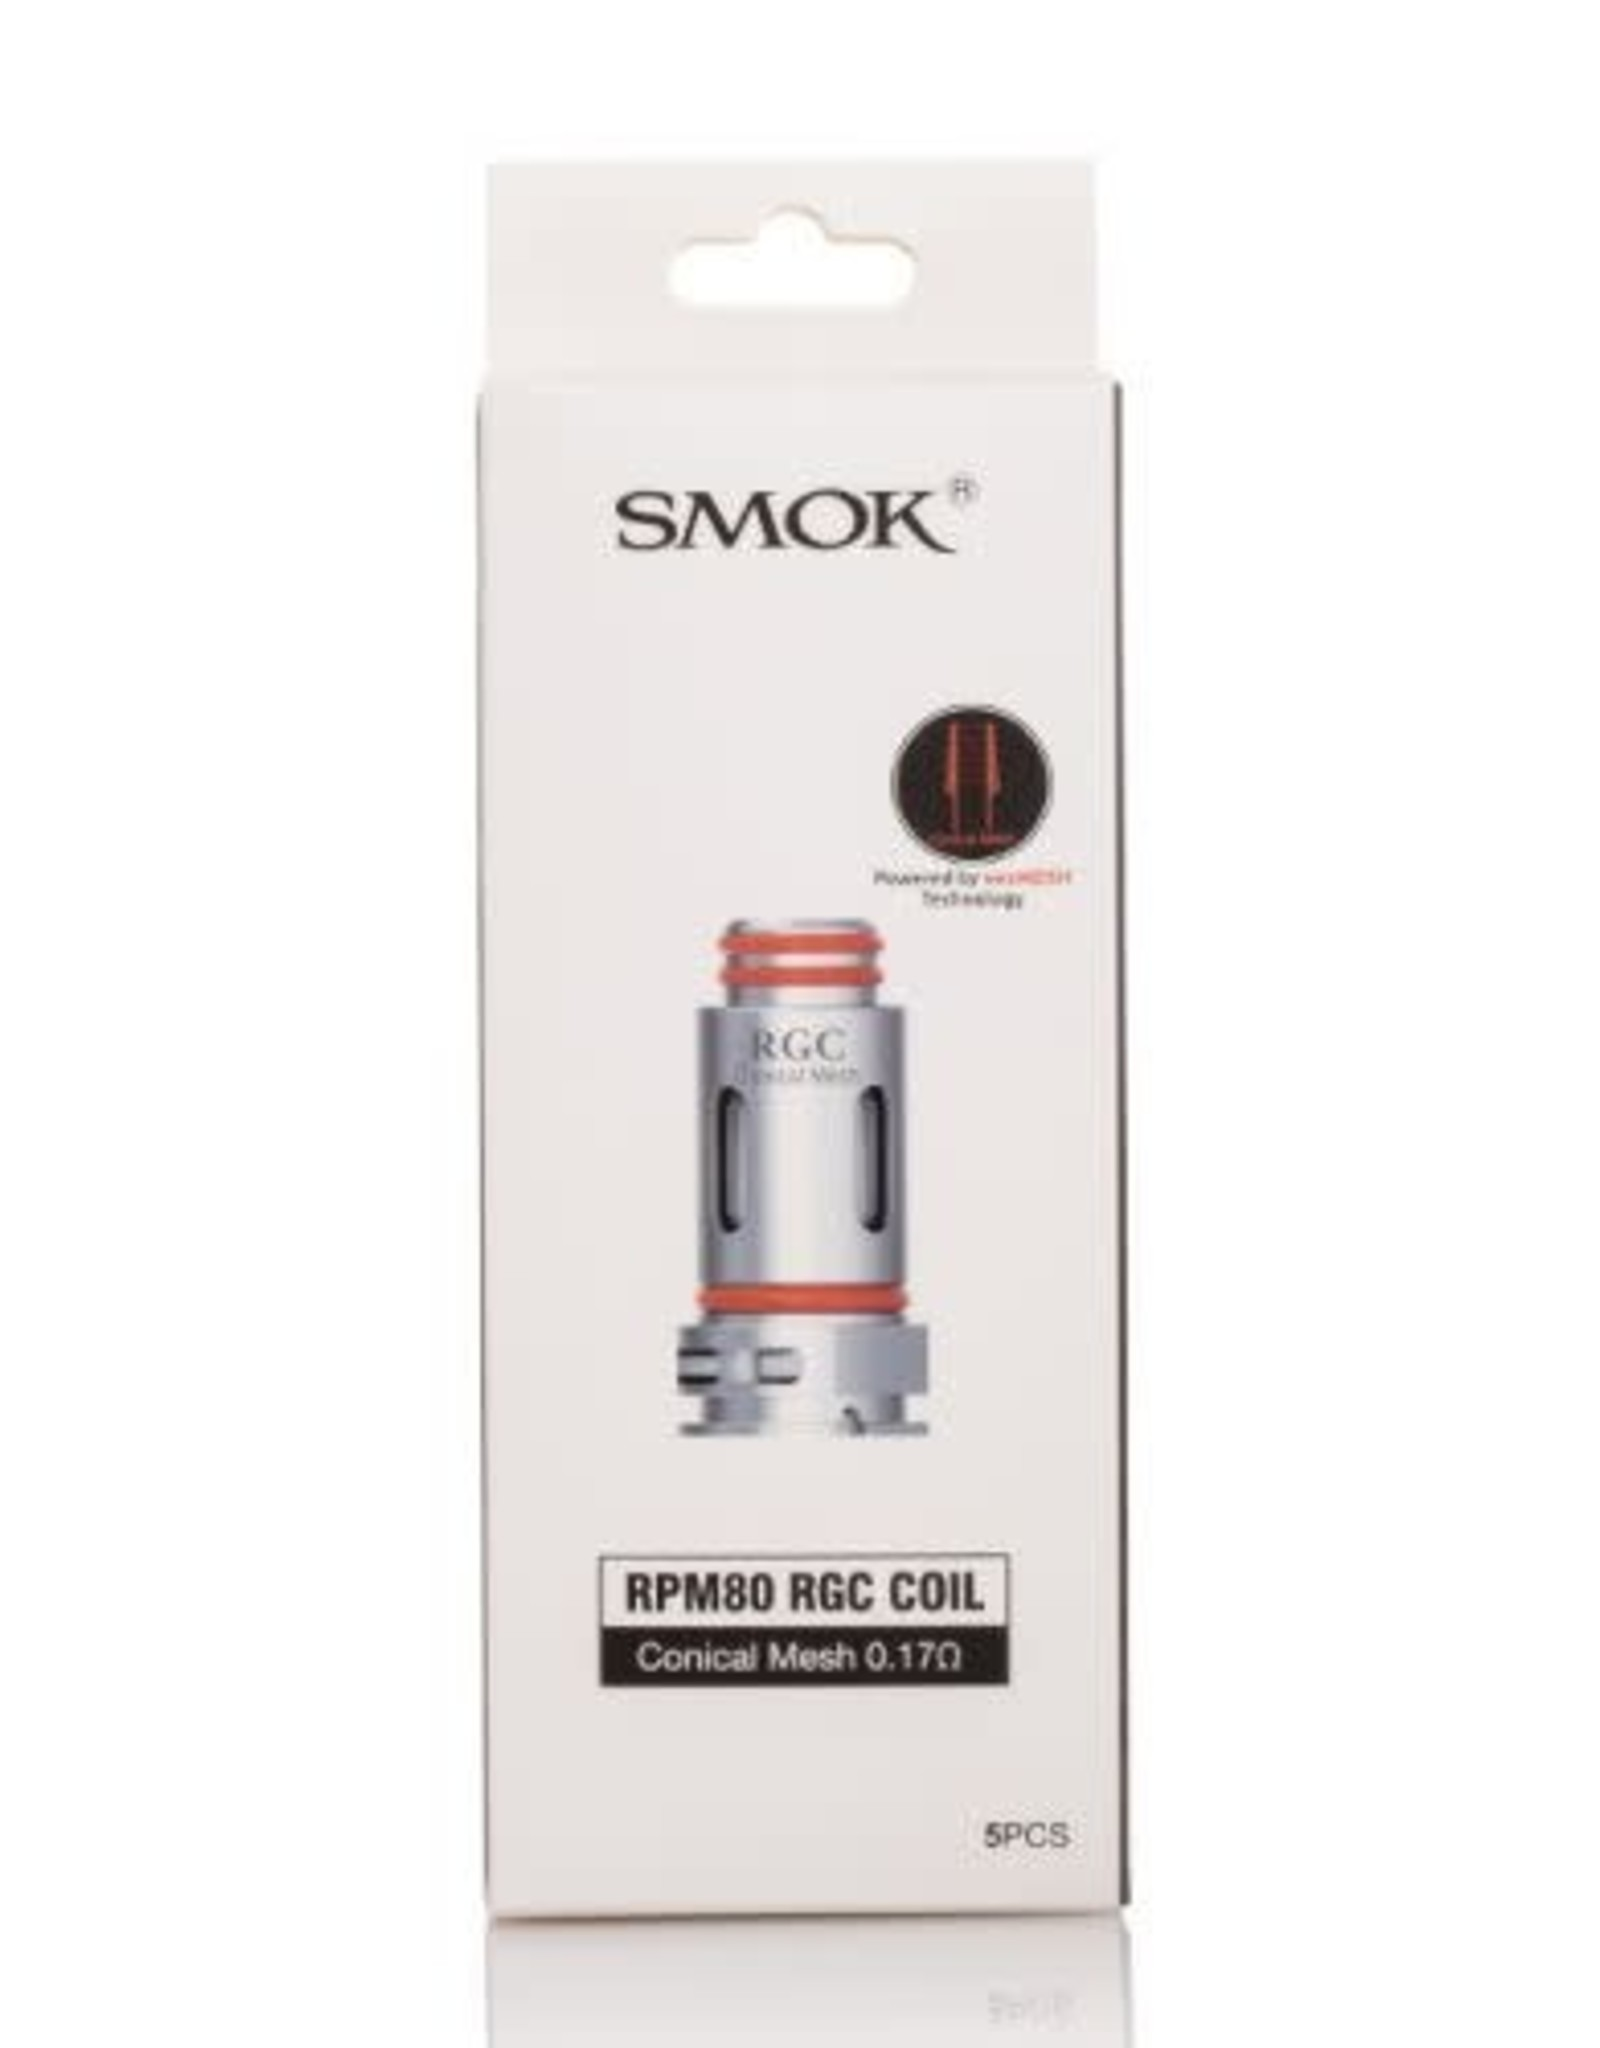 Smok RPM 80 RGC Conical Mesh 0.17 Coils By smok